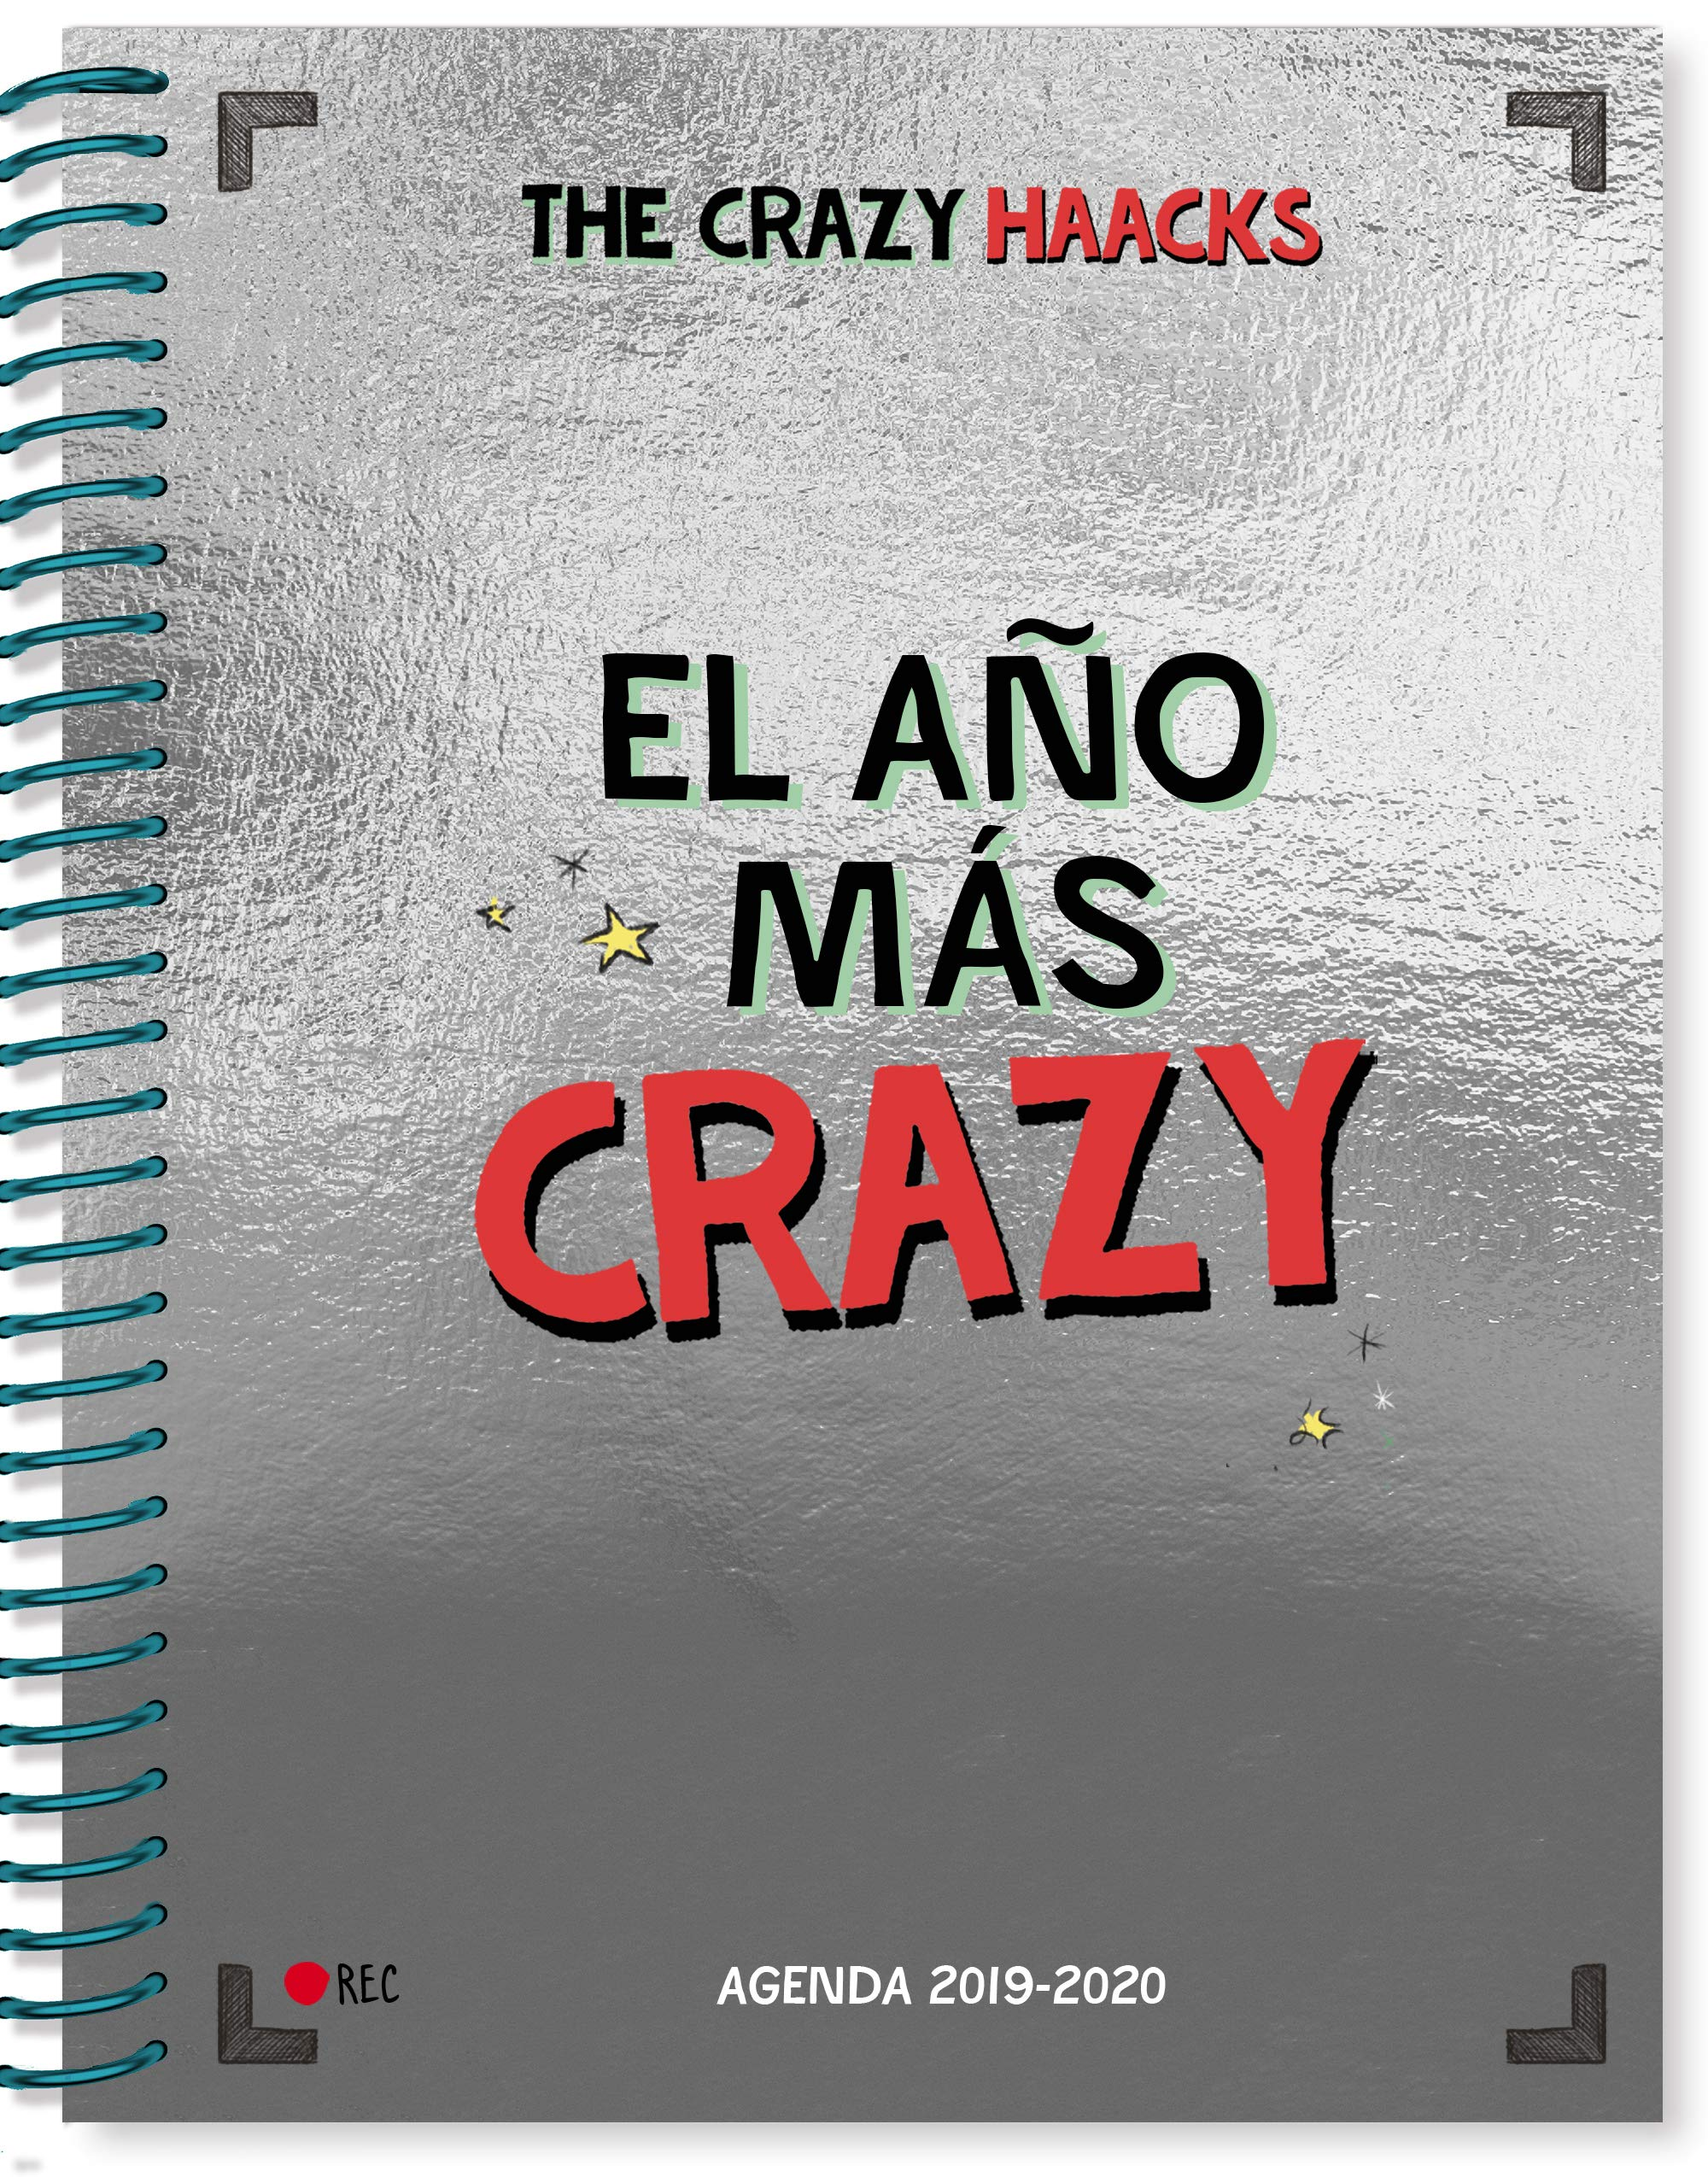 Agenda curso 2019-2020 Serie The Crazy Haacks: Amazon.es: The Crazy Haacks:  Libros